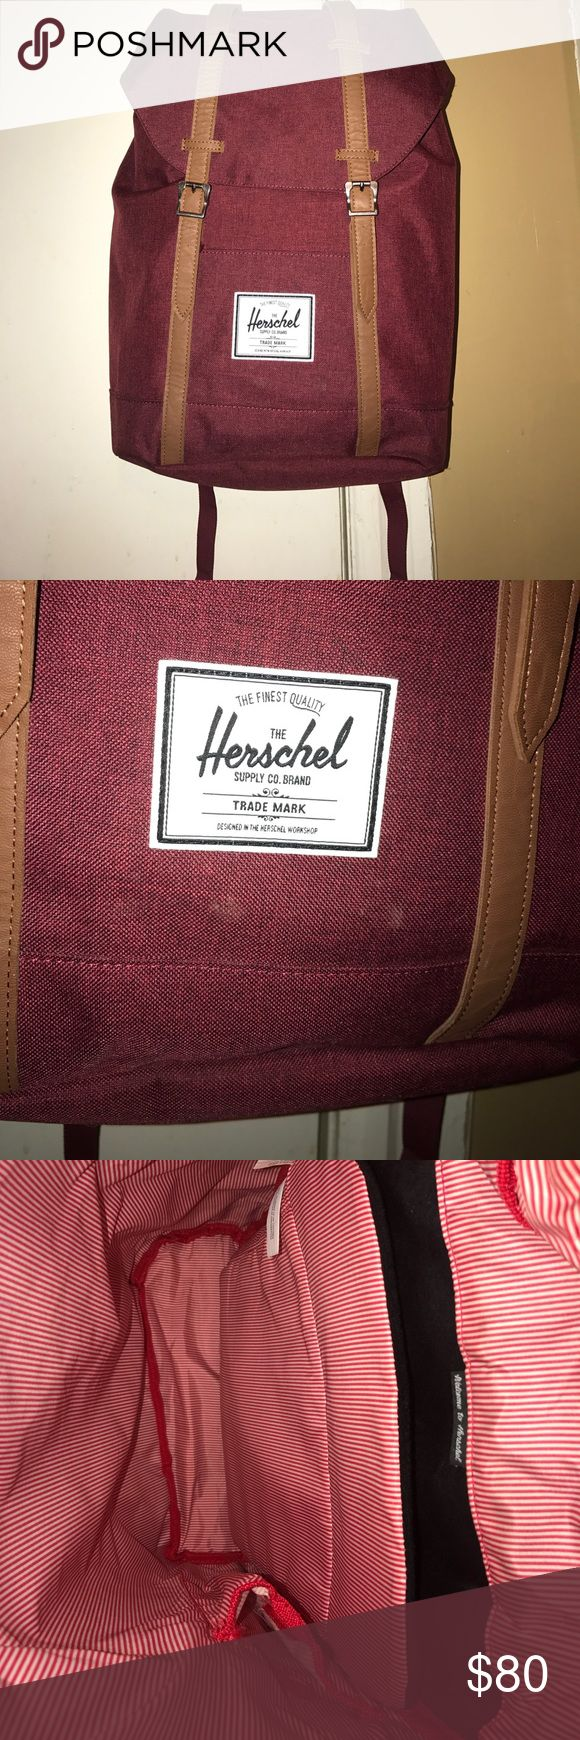 Burgundy Herschel backpack It has a laptop case. It's really deep. And can hold a a lot. In perfect condition worn a couple time but there is no damage at all to the bag. The price is firm because poshmark takes a percentage. Herschel Supply Company Bags Backpacks